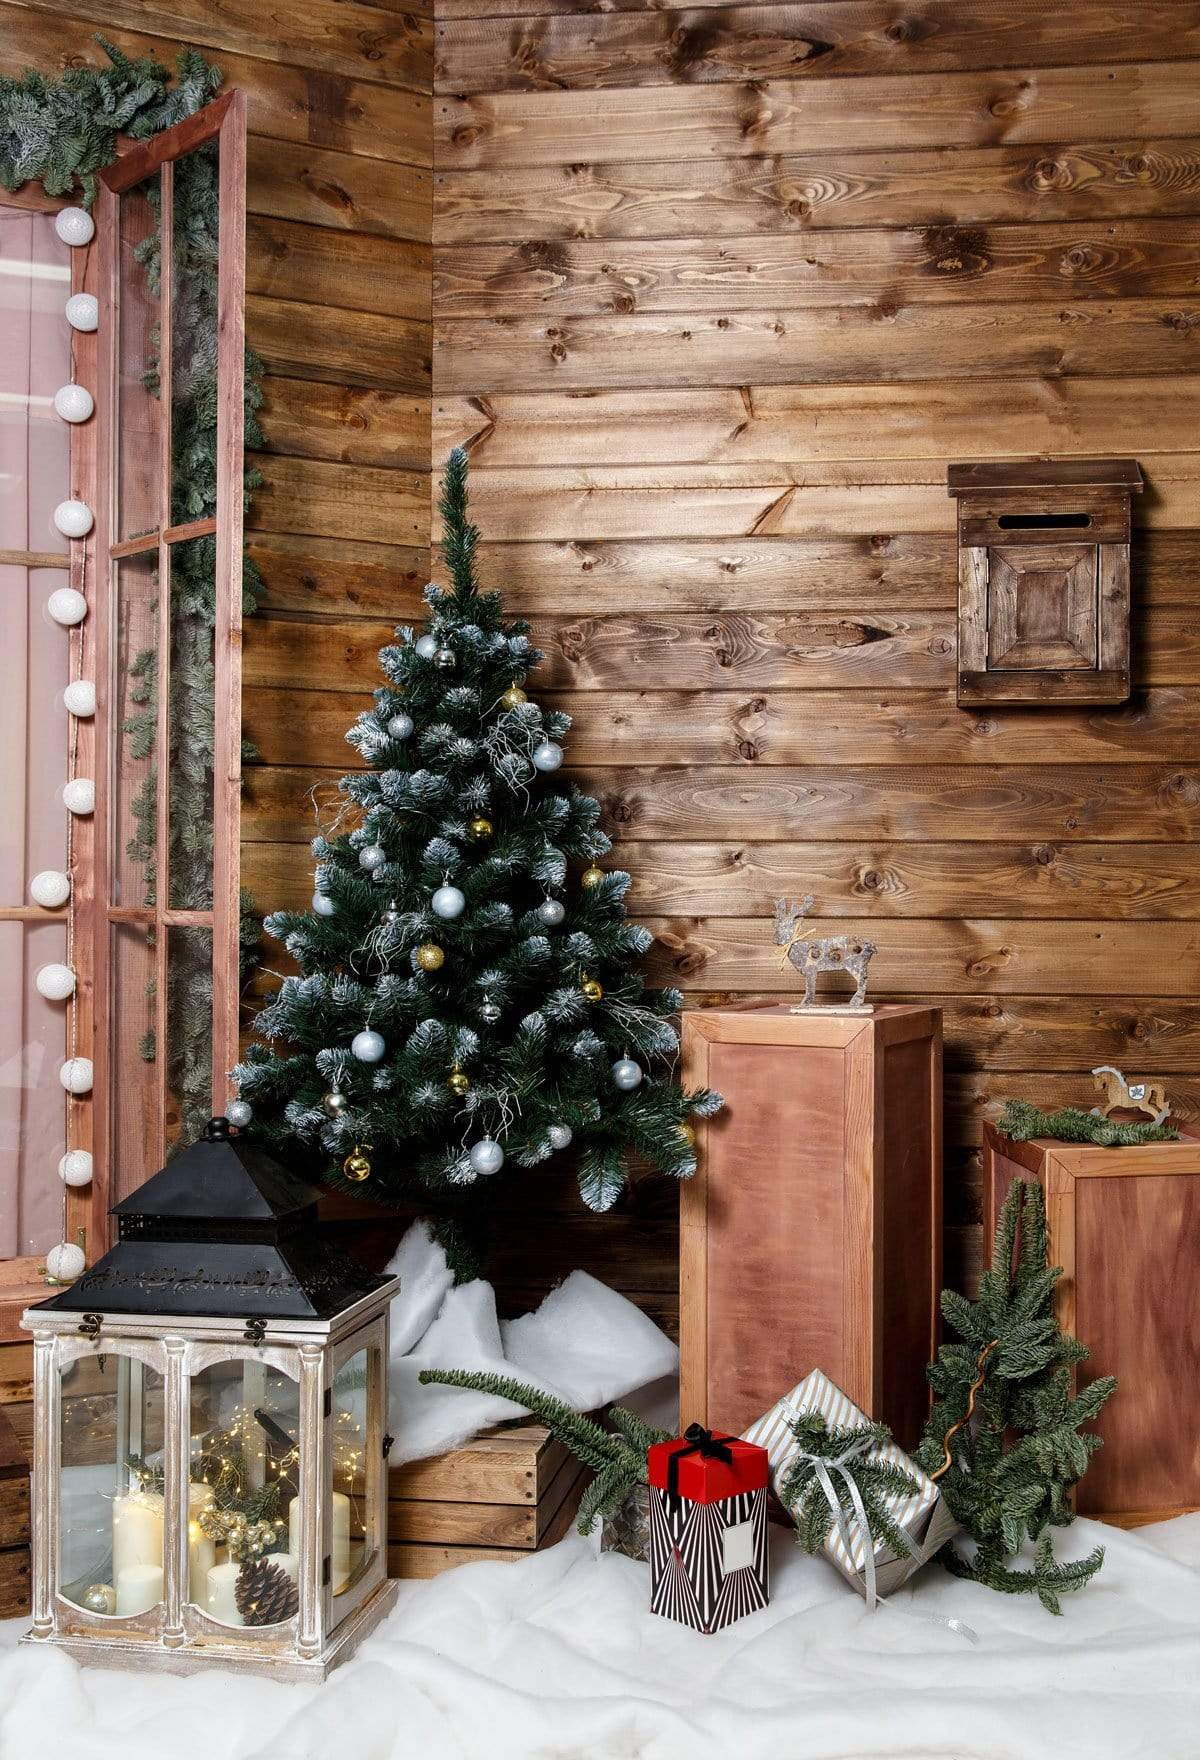 Load image into Gallery viewer, Katebackdrop£ºKate Wood Wall And Christmas Tree With Decorations for Photography